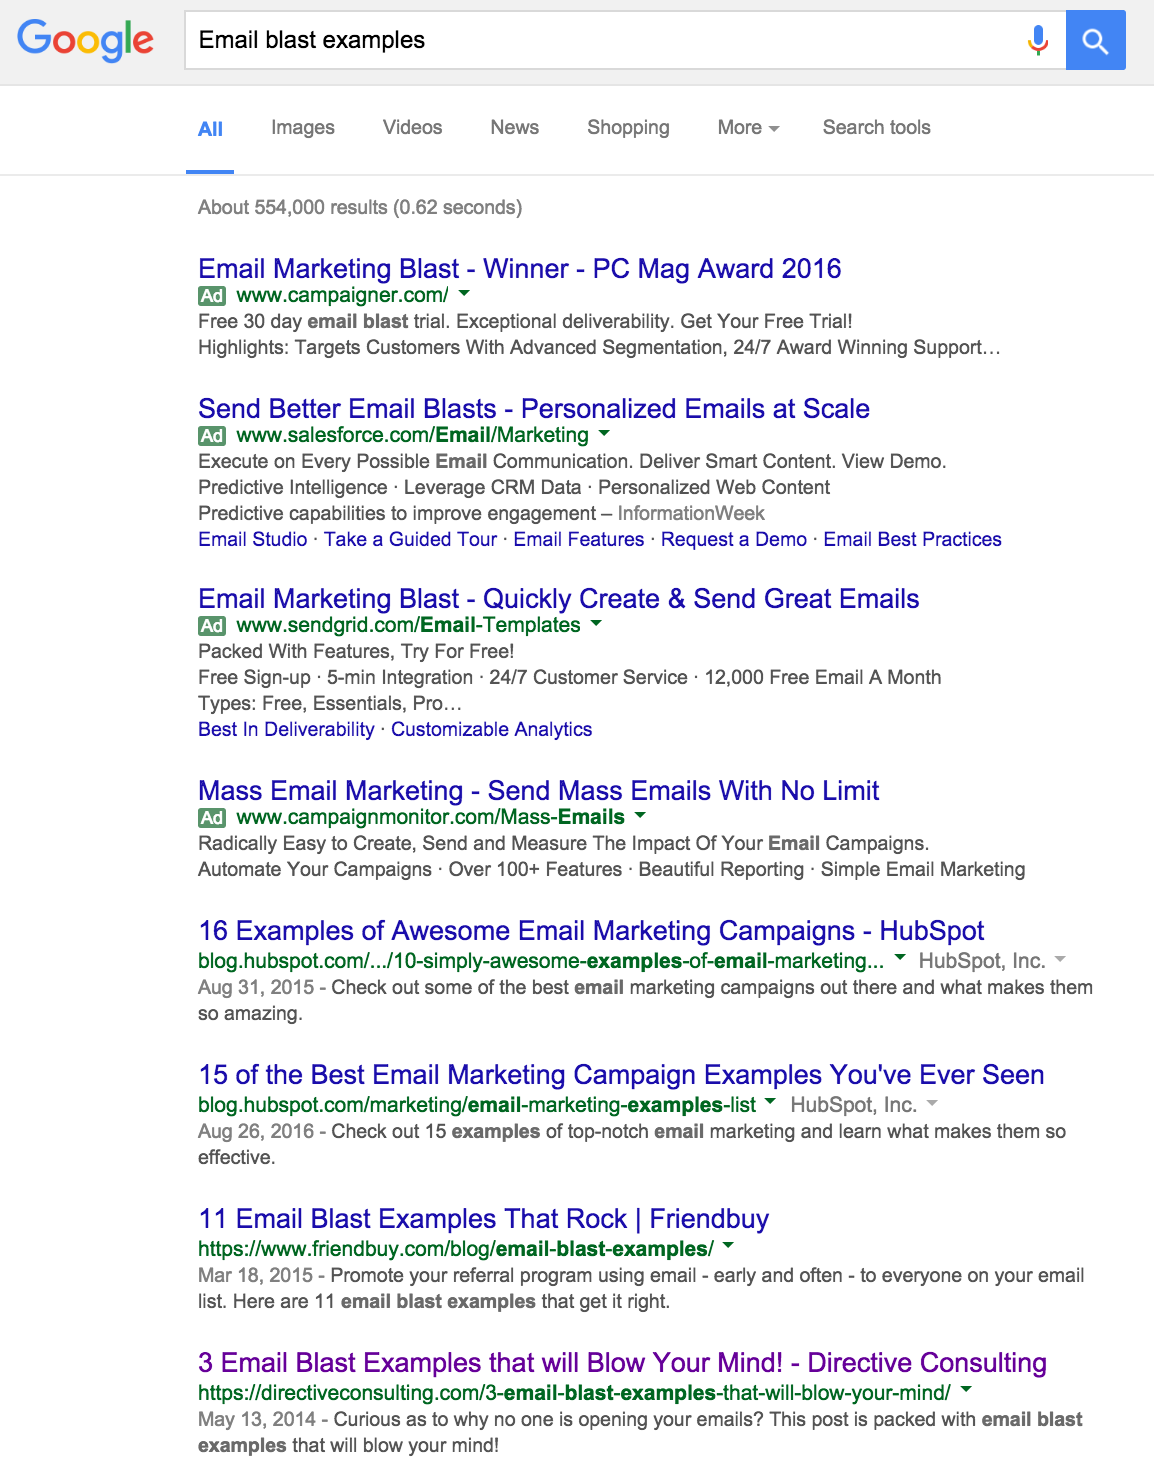 The Google search results for 'email blast examples' shows the author's article on the front page